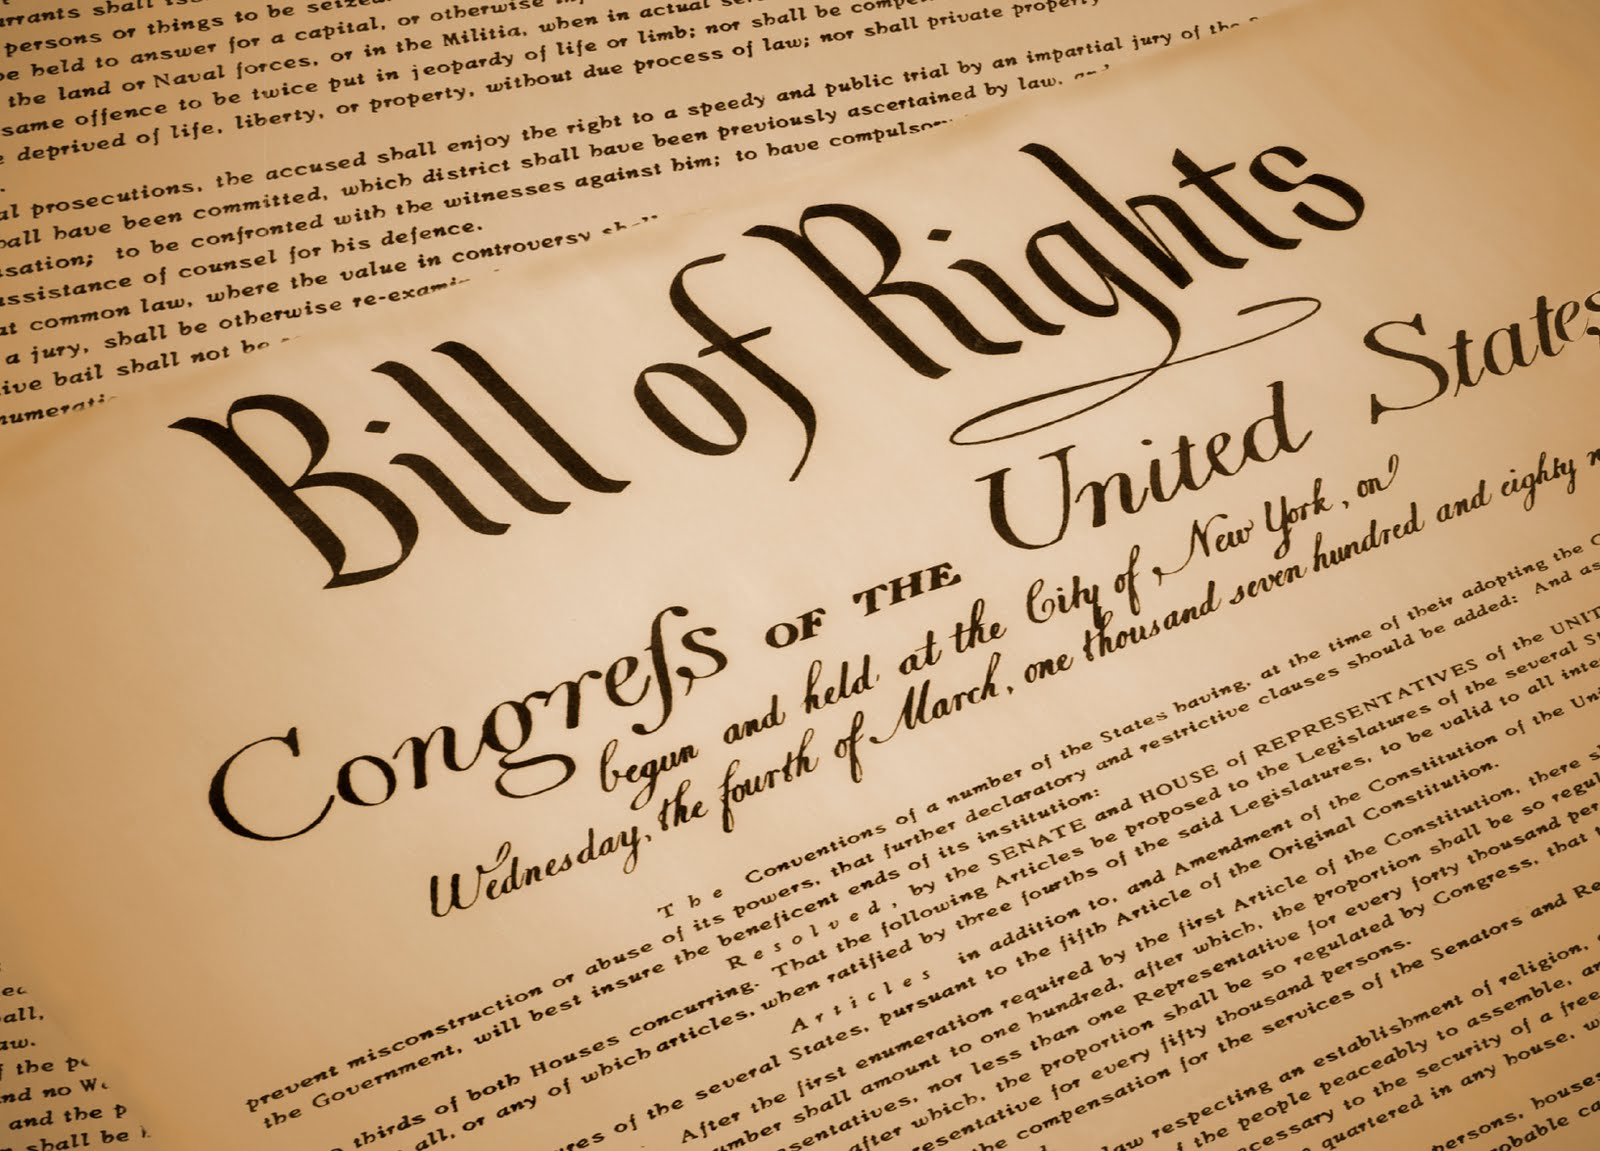 news - honor freedom and sacrifice on bill of rights day | heartland